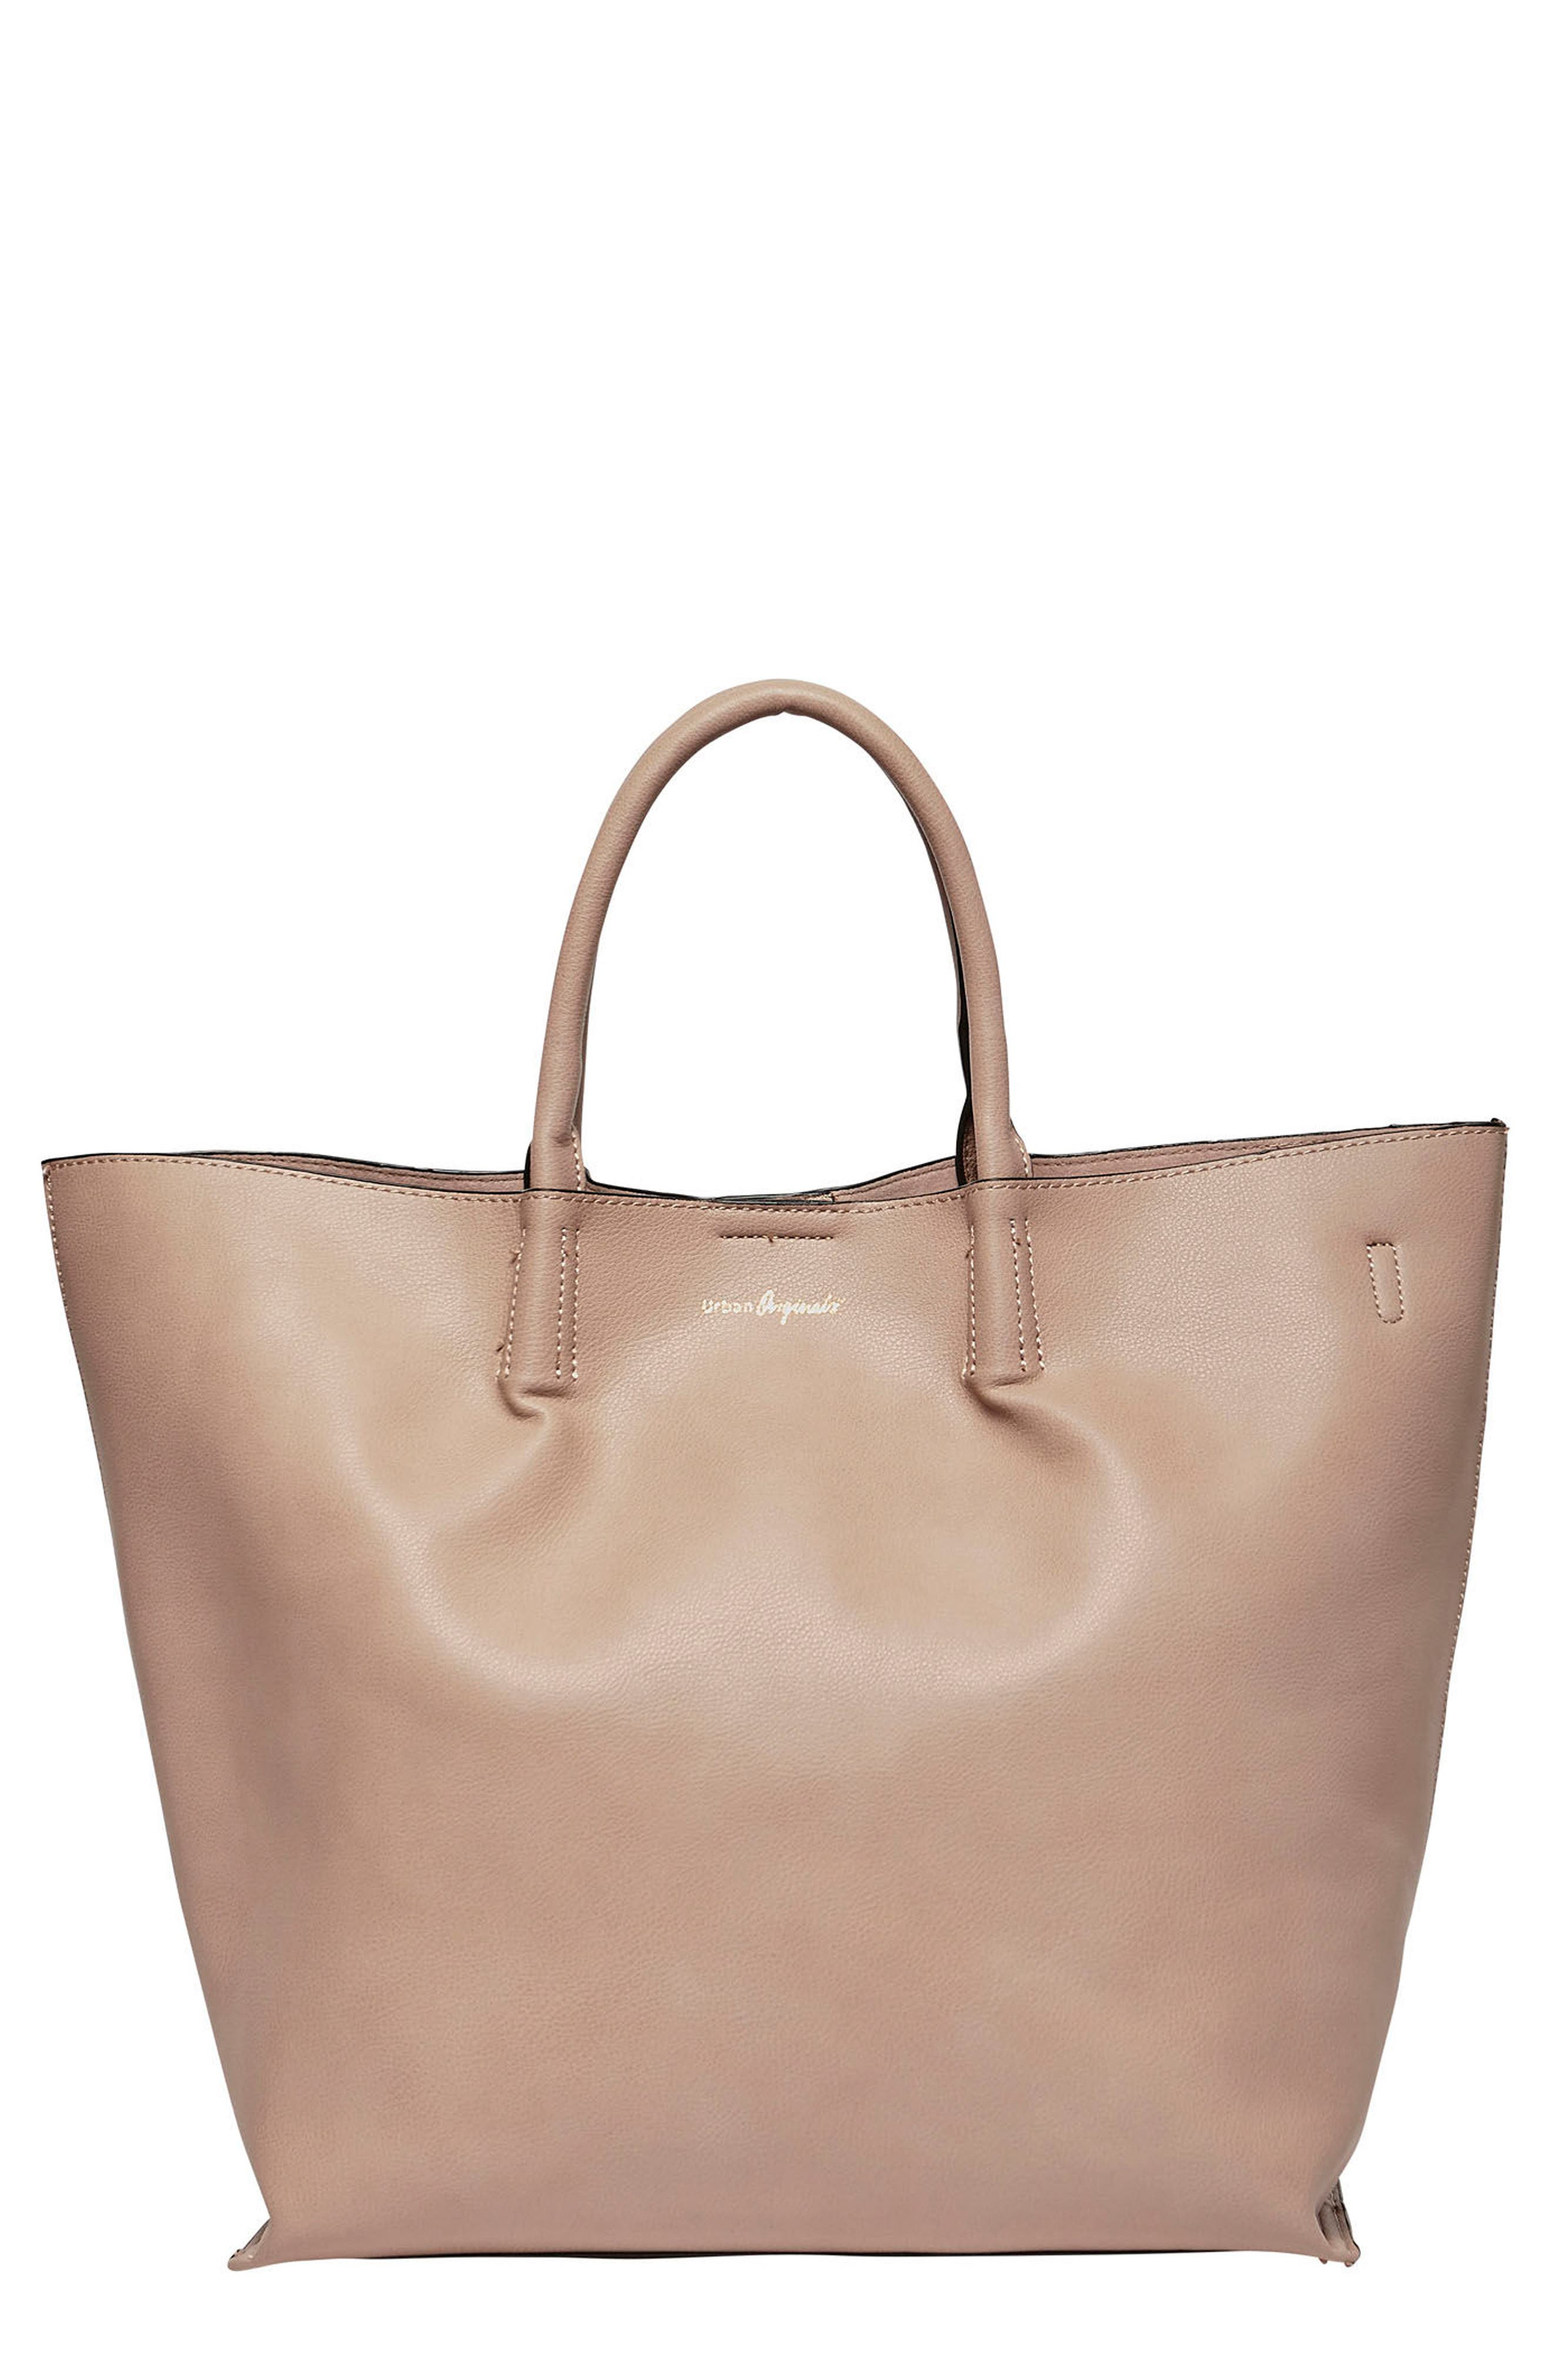 Butterfly Vegan Leather Tote,                         Main,                         color, Nude